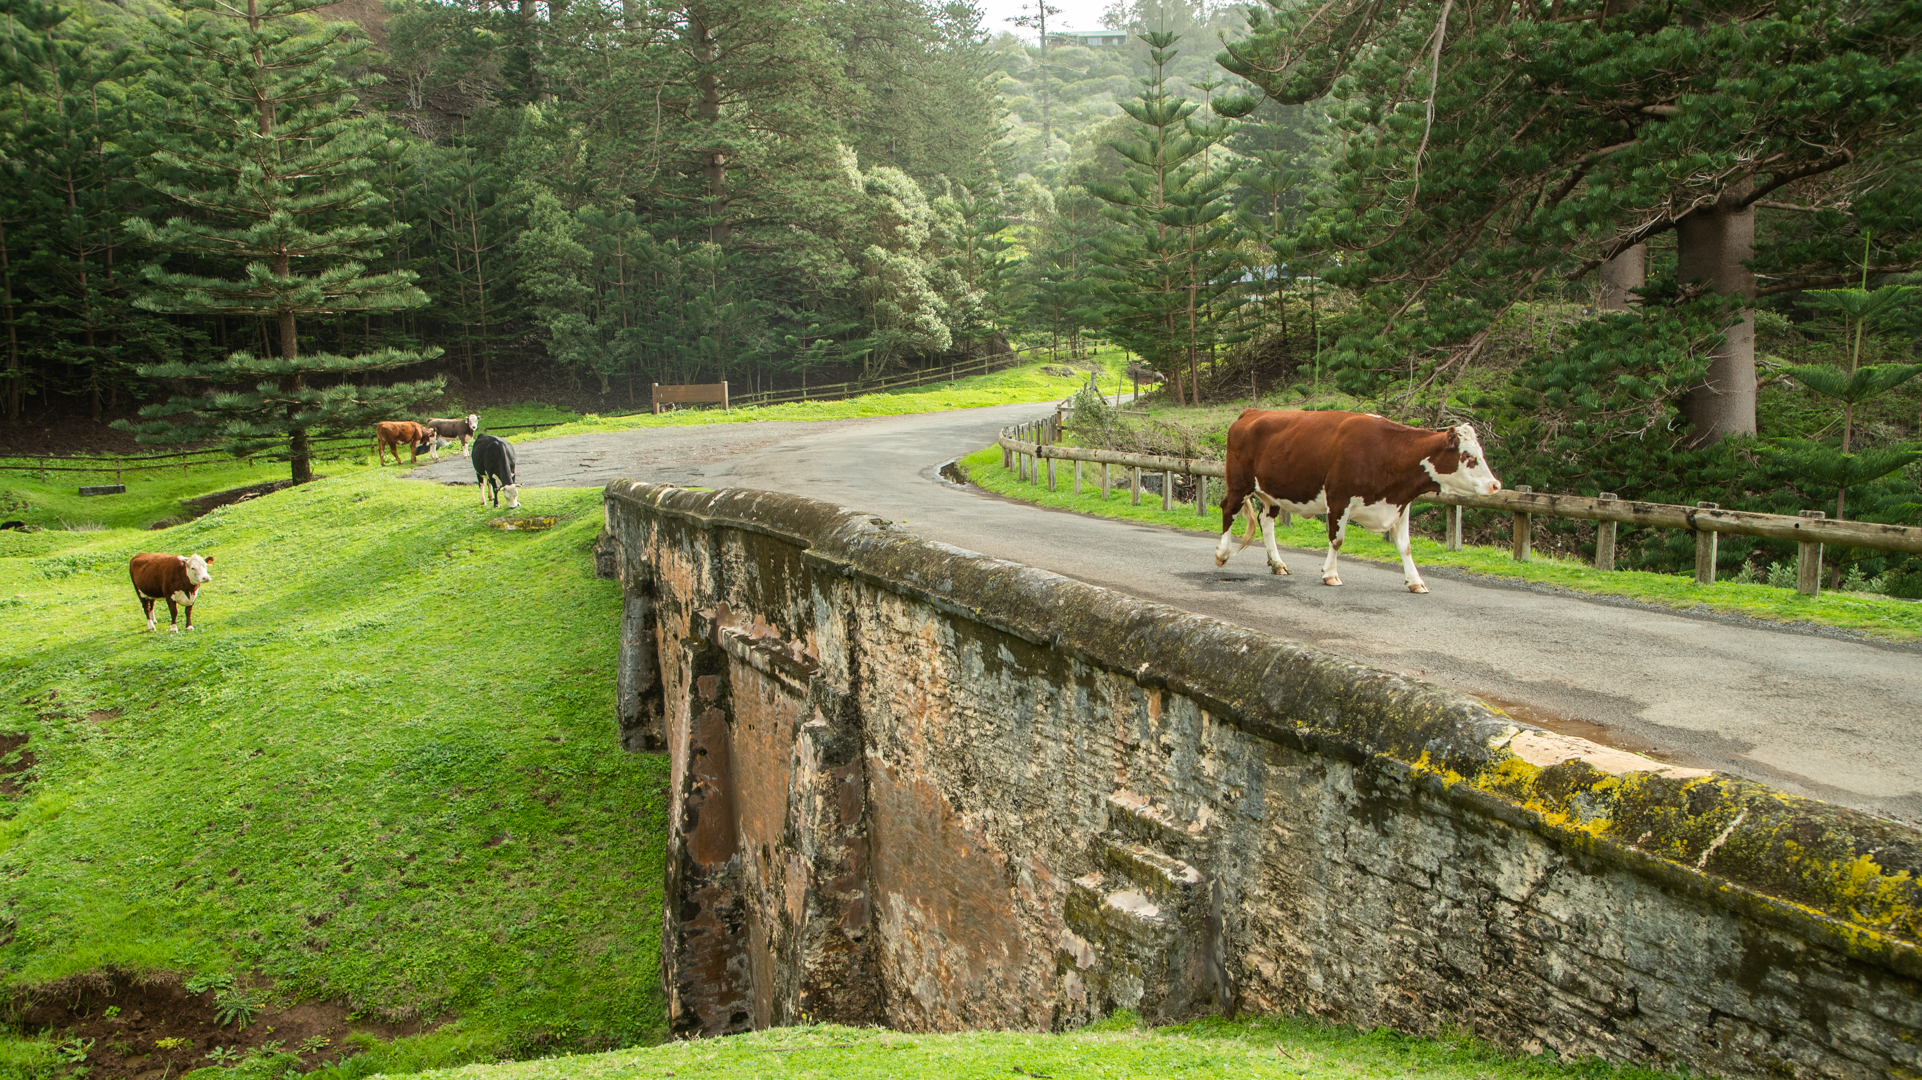 Cow crossing Bloody Bridge with several cows grazing in the background on the grass by the road and pine trees.